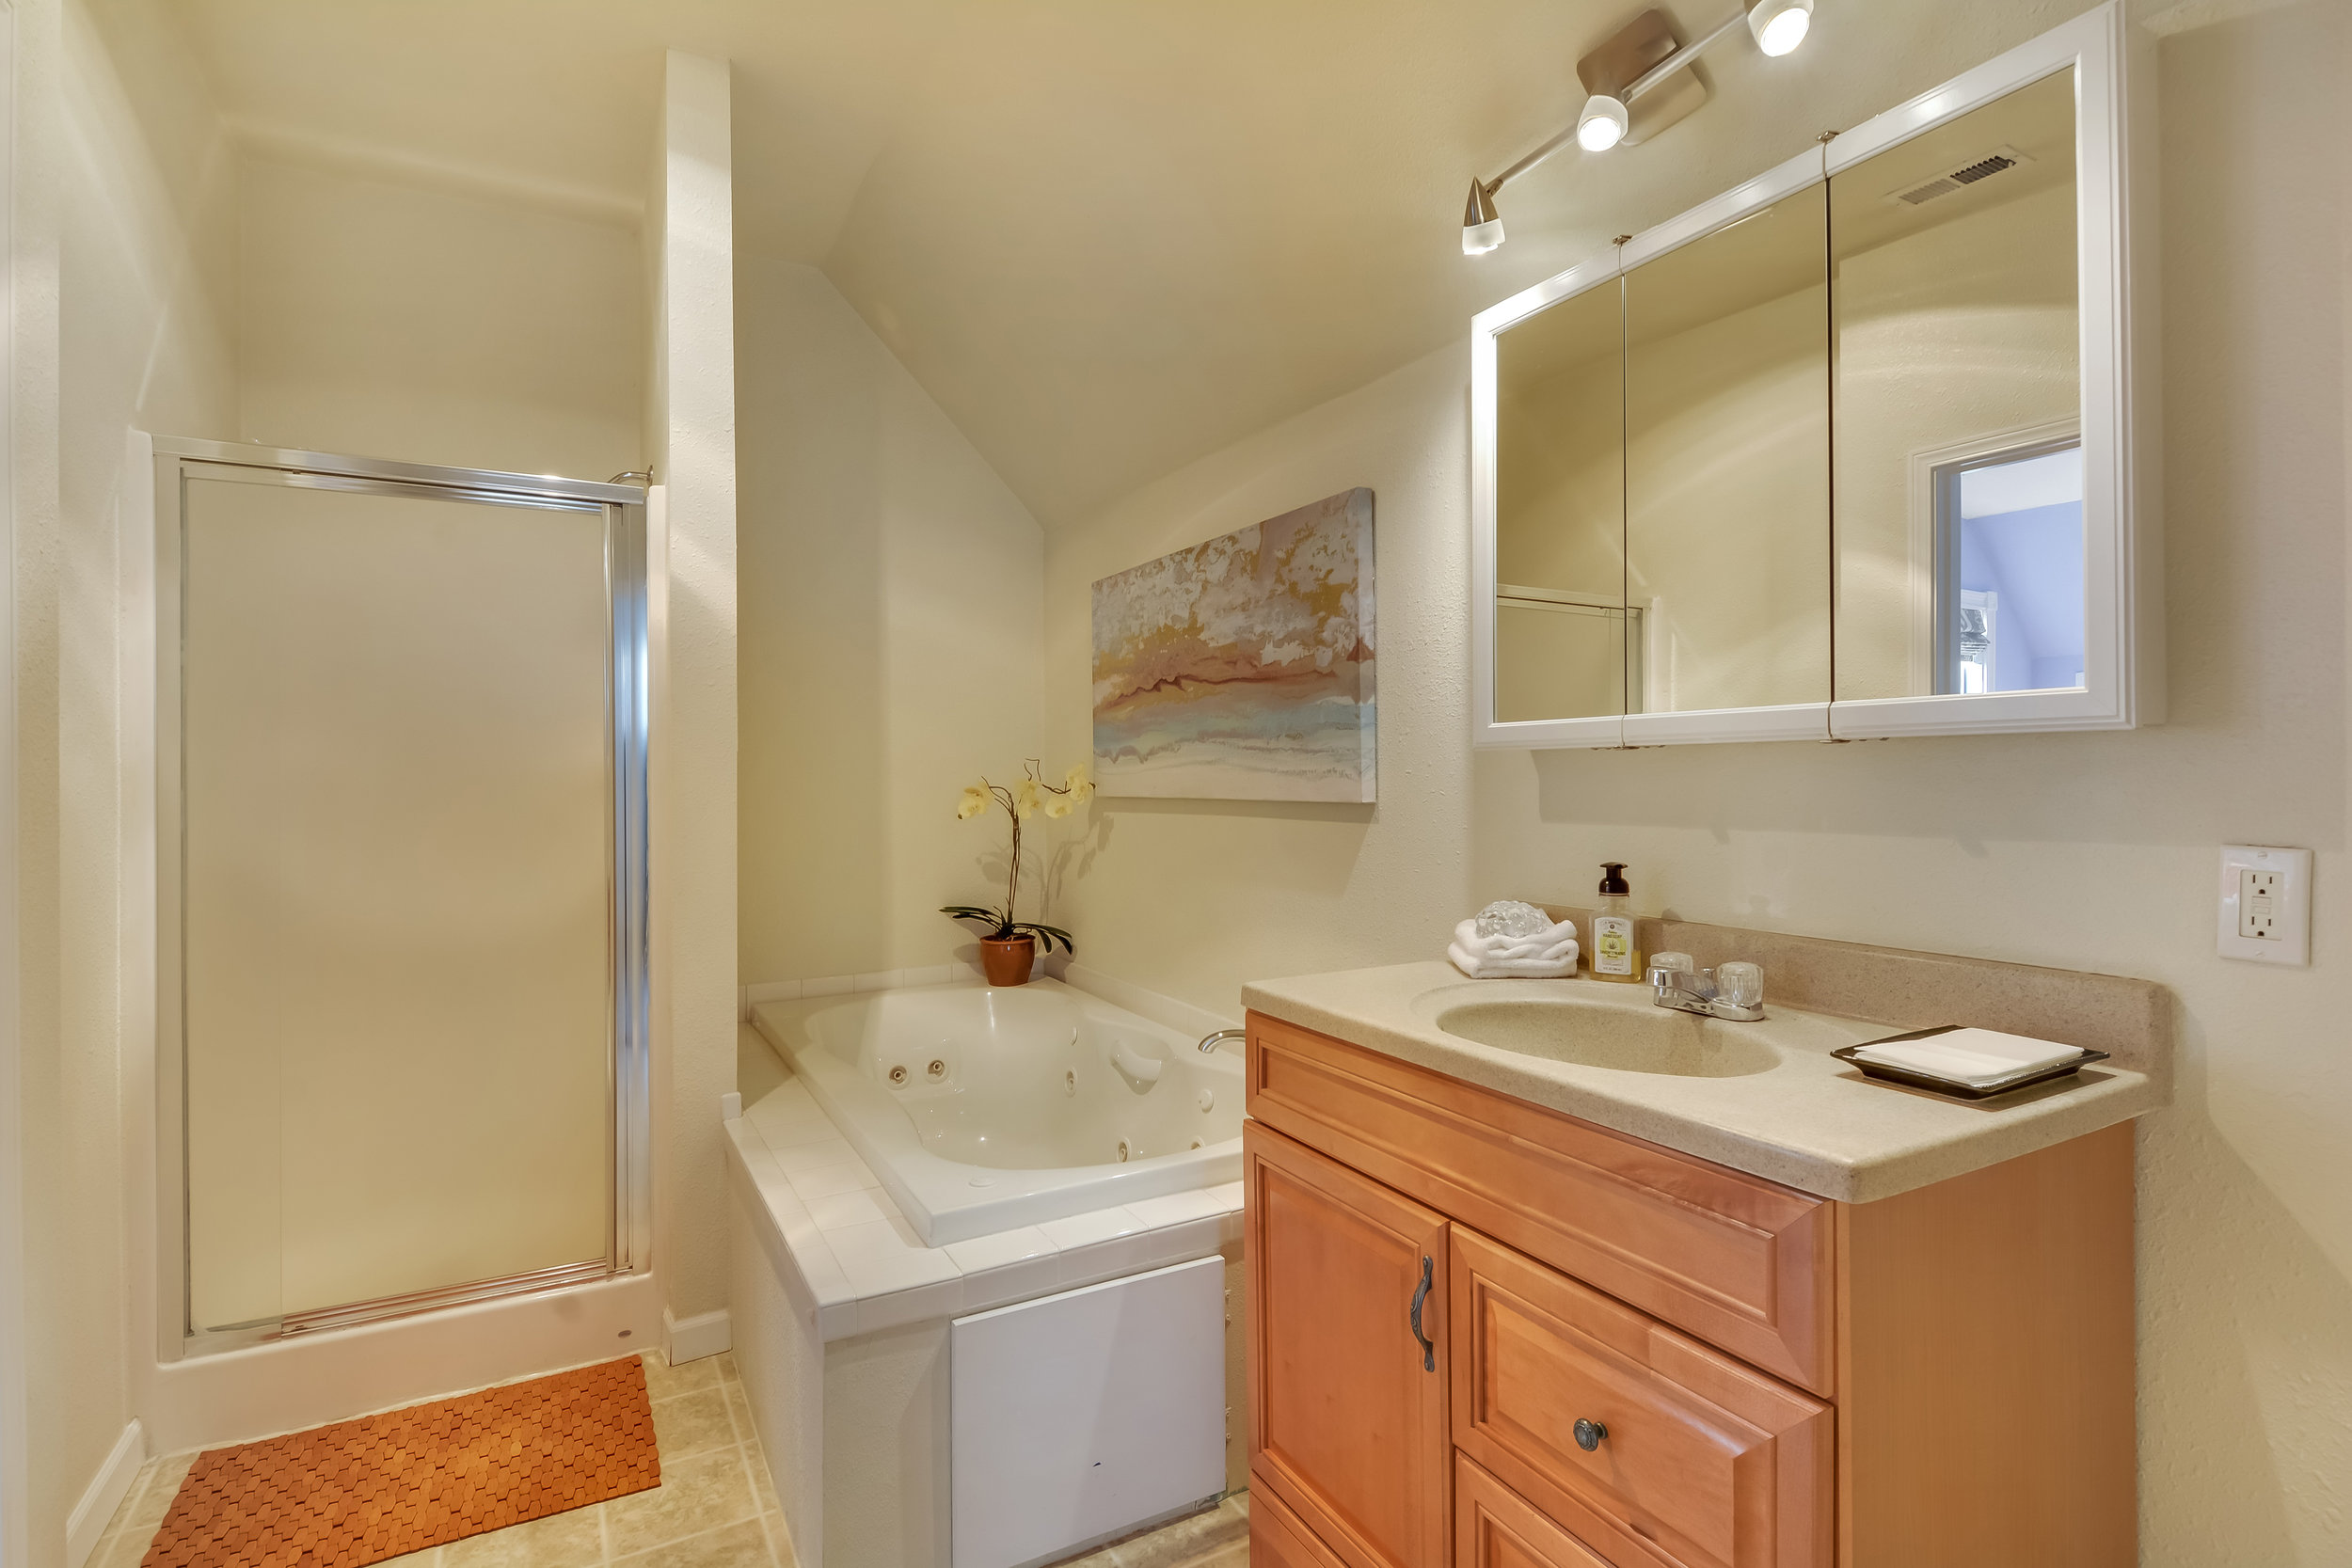 Upstairs full bath with its tiled-in jetted tub, separate shower, and generous vanity. Find even more storage behind the mirror doors. This bathroom is accessible directly from inside both upstairs bedrooms.